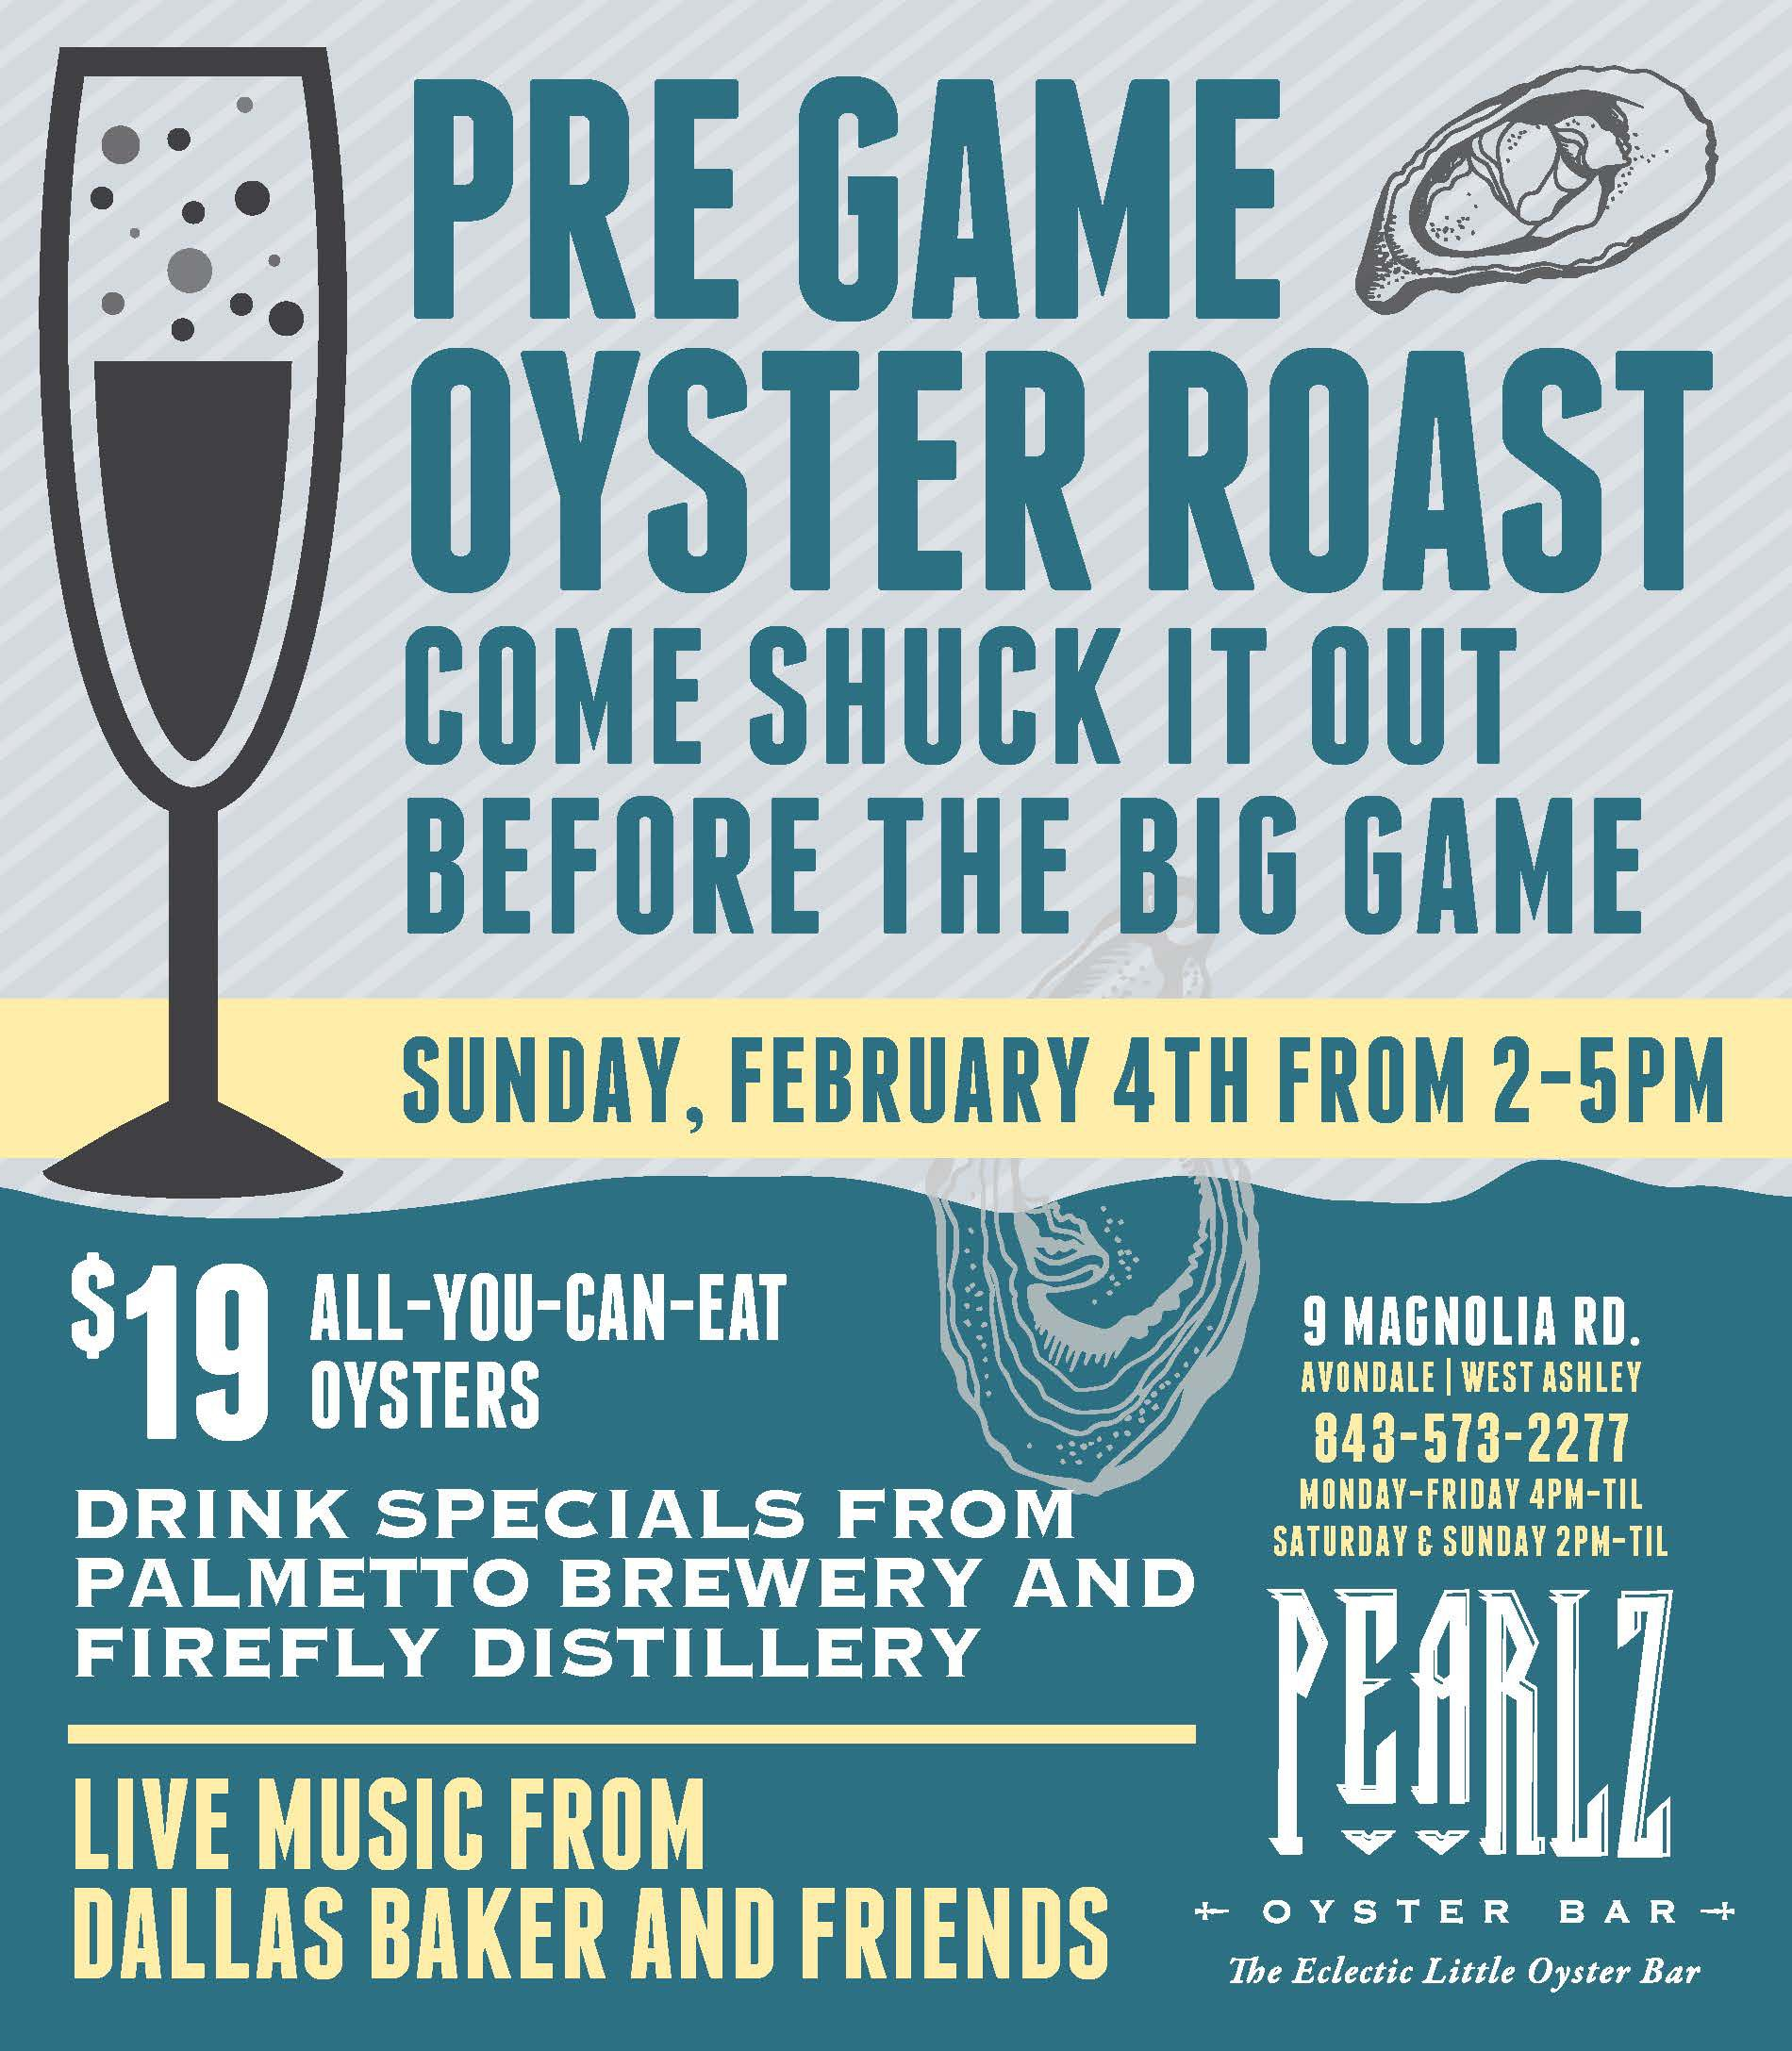 Pearlz-Oyster Roast West Of PRE GAME.jpg